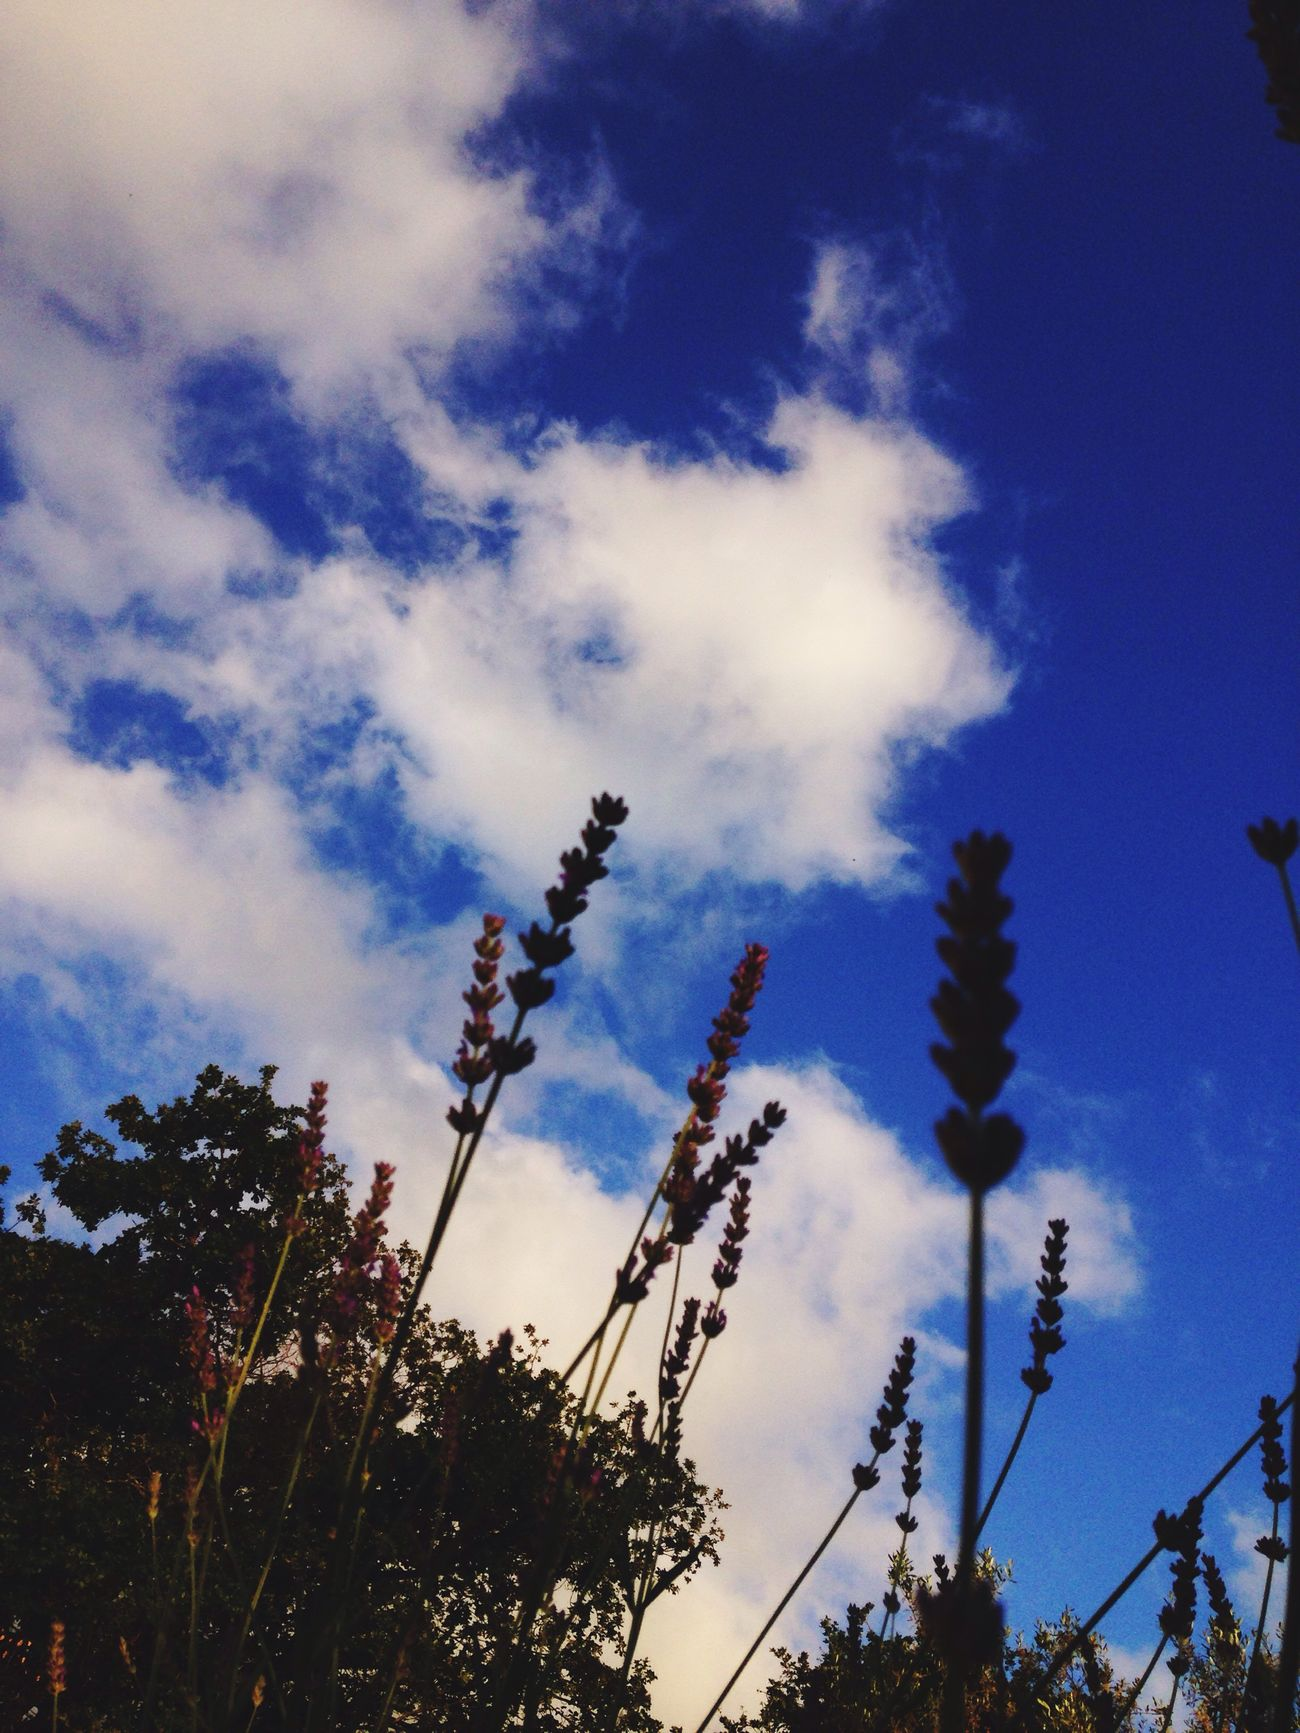 Sky Skyporn Clouds And Sky Clouds Blue Sky Blue Flower Garden Nature Nature Photography Nature_collection Lavander